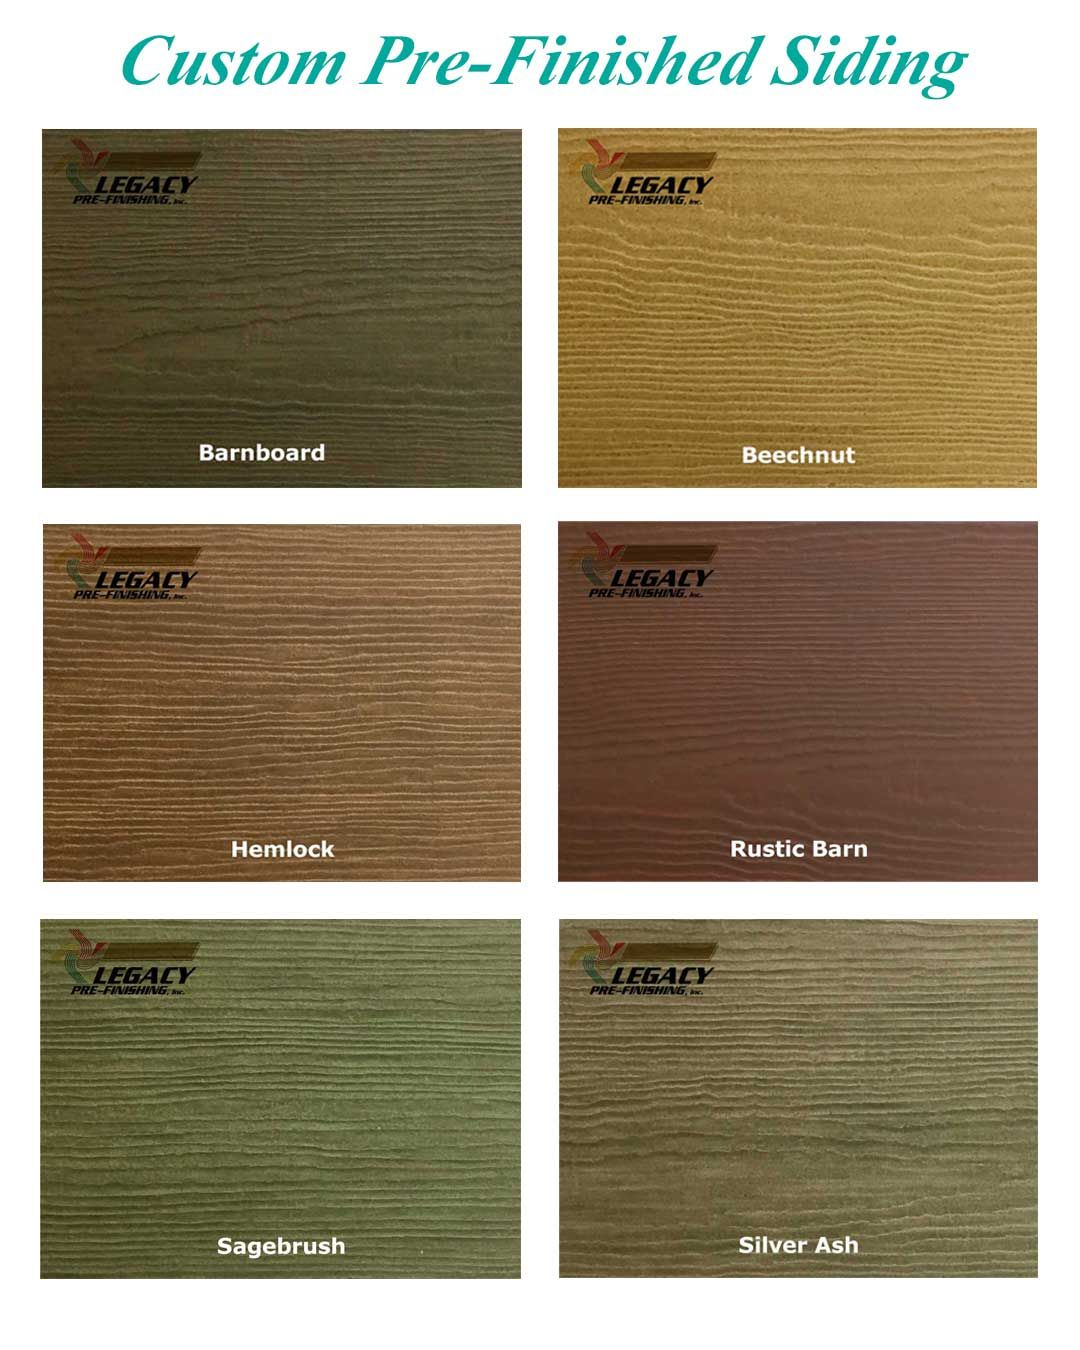 Custom Prefinished Factory Finished James Hardie Fiber Cement Siding Make Your Home Unique Custom Stain Color Siding Fiber Cement Lap Siding Shingle Siding